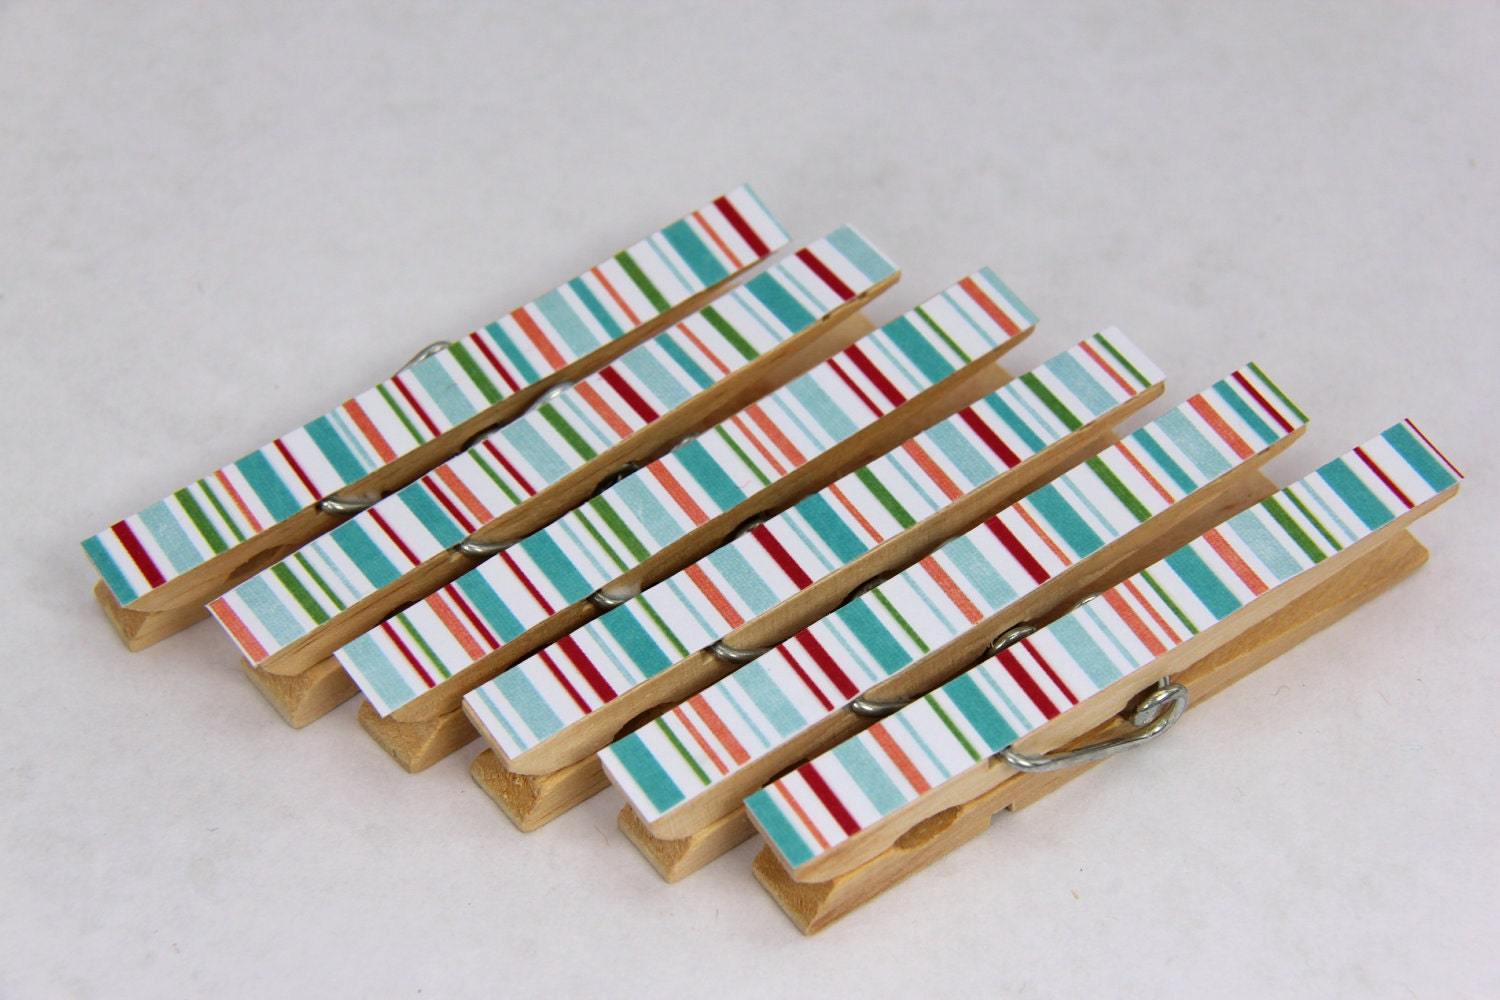 Decorated Wooden Clothes Pegs/Pins, Blue and Red Stripes - Set of 6 - Pepperpicnic